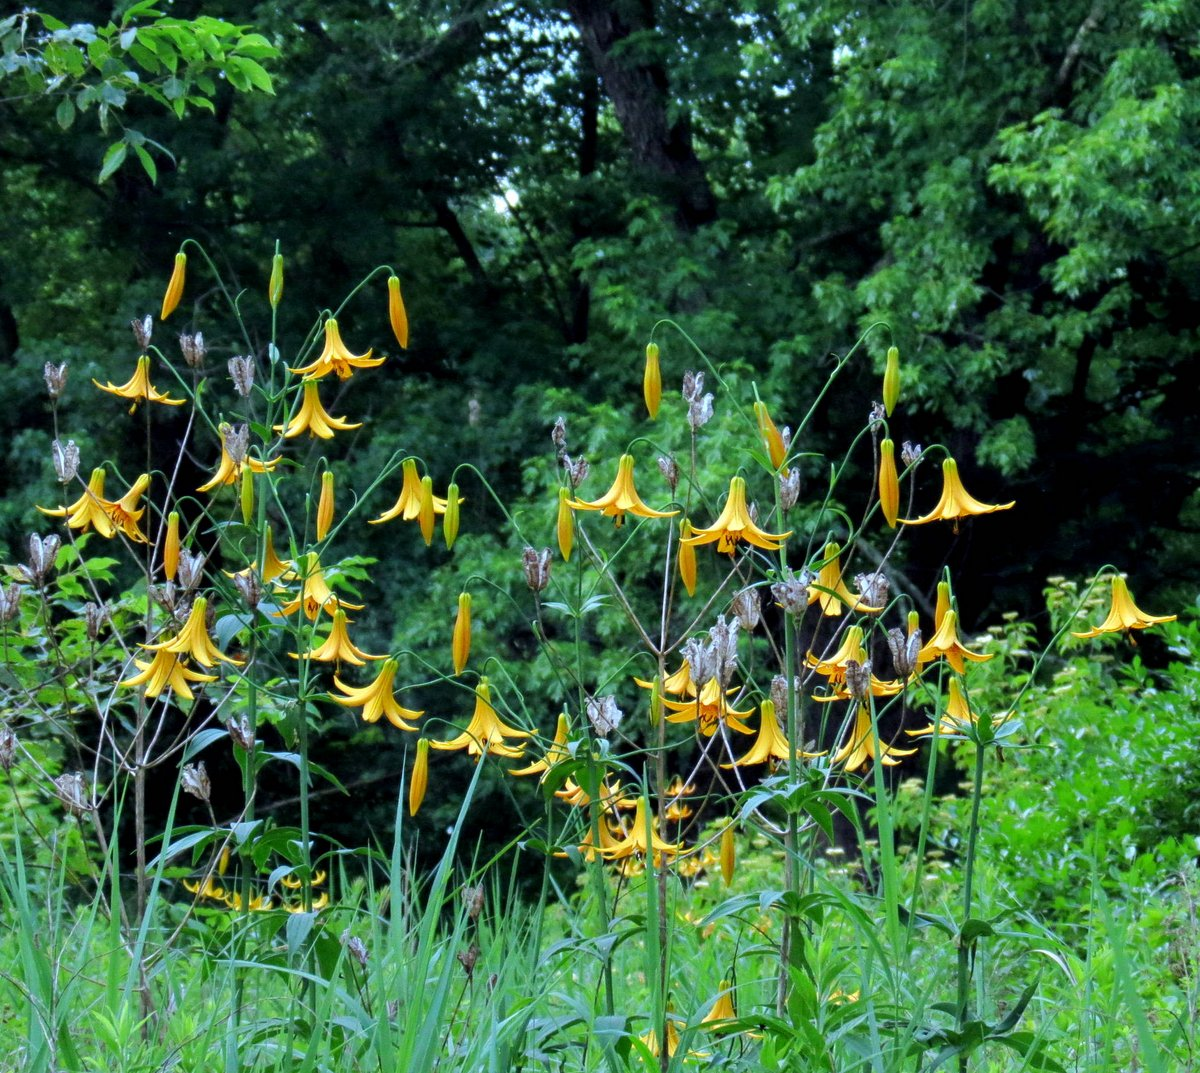 8. Canada Lilies